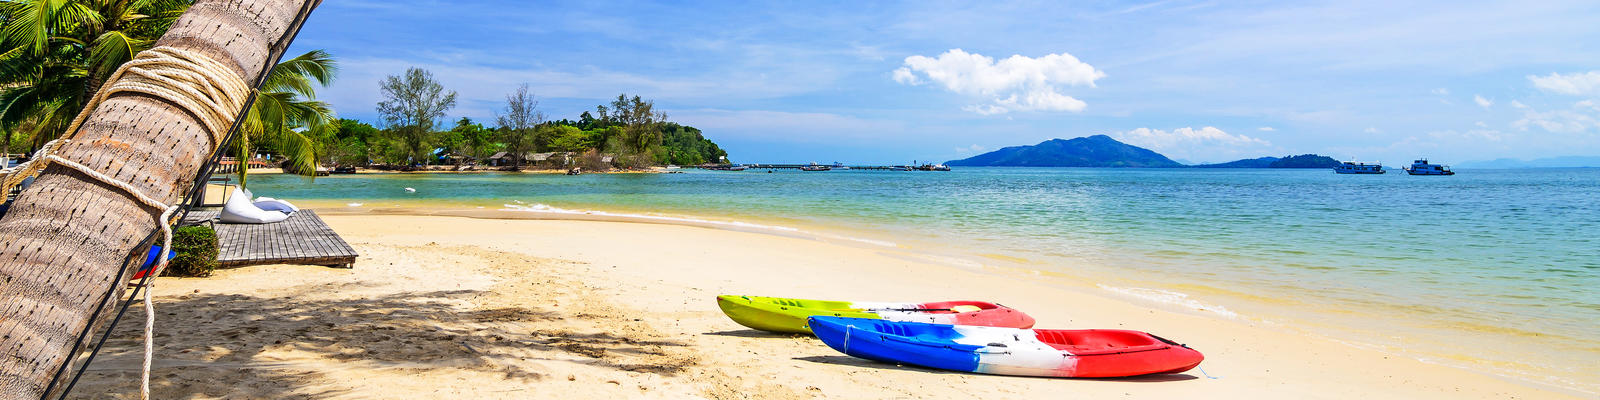 Kayaks on the Tropical Beach, Payam Island, Ranong, Thailand (Photo: Take Photo/Shutterstock)